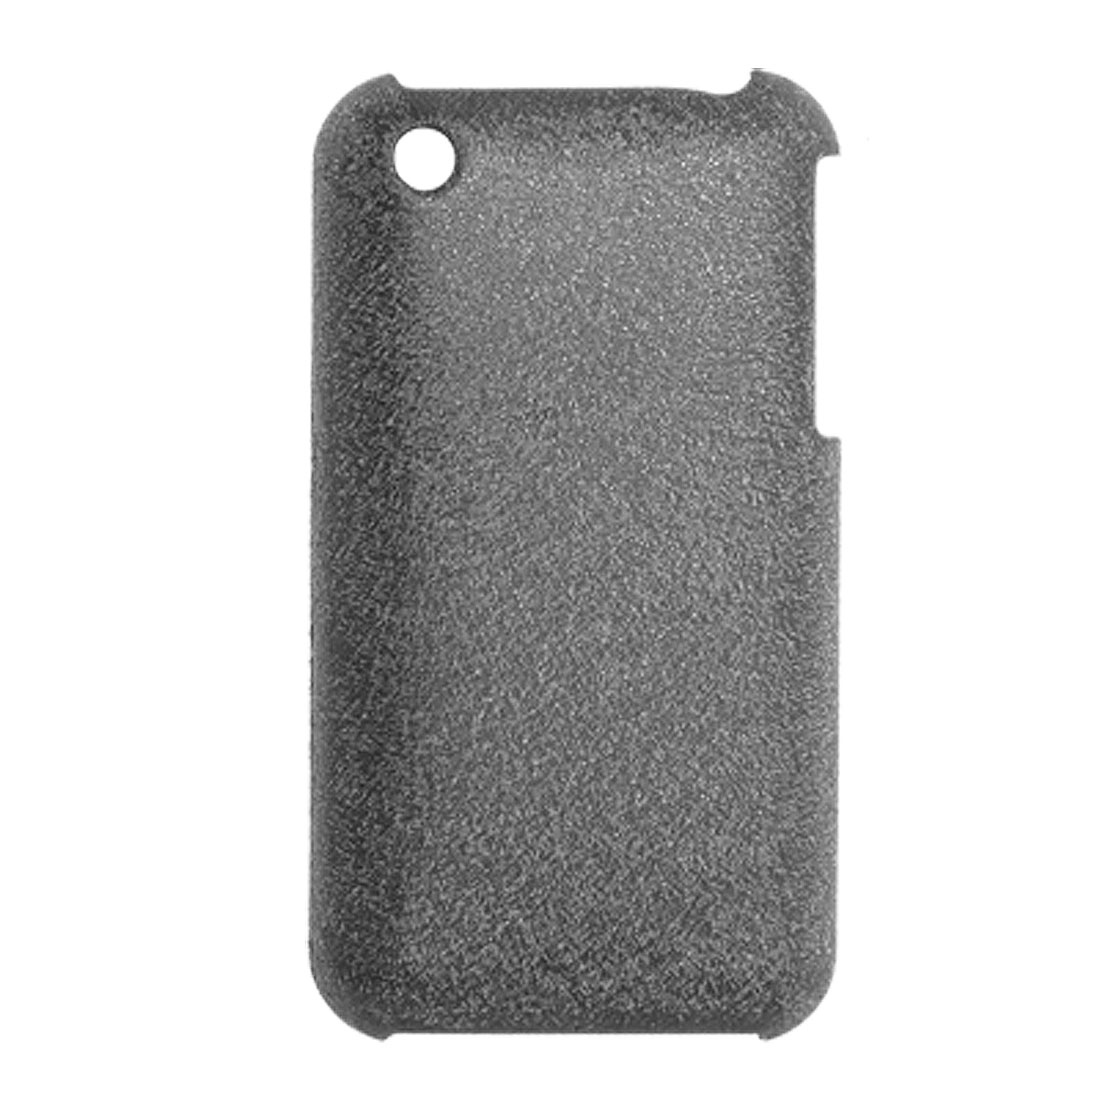 Grey Plastic Back Case Cover Protector for iPhone 3G